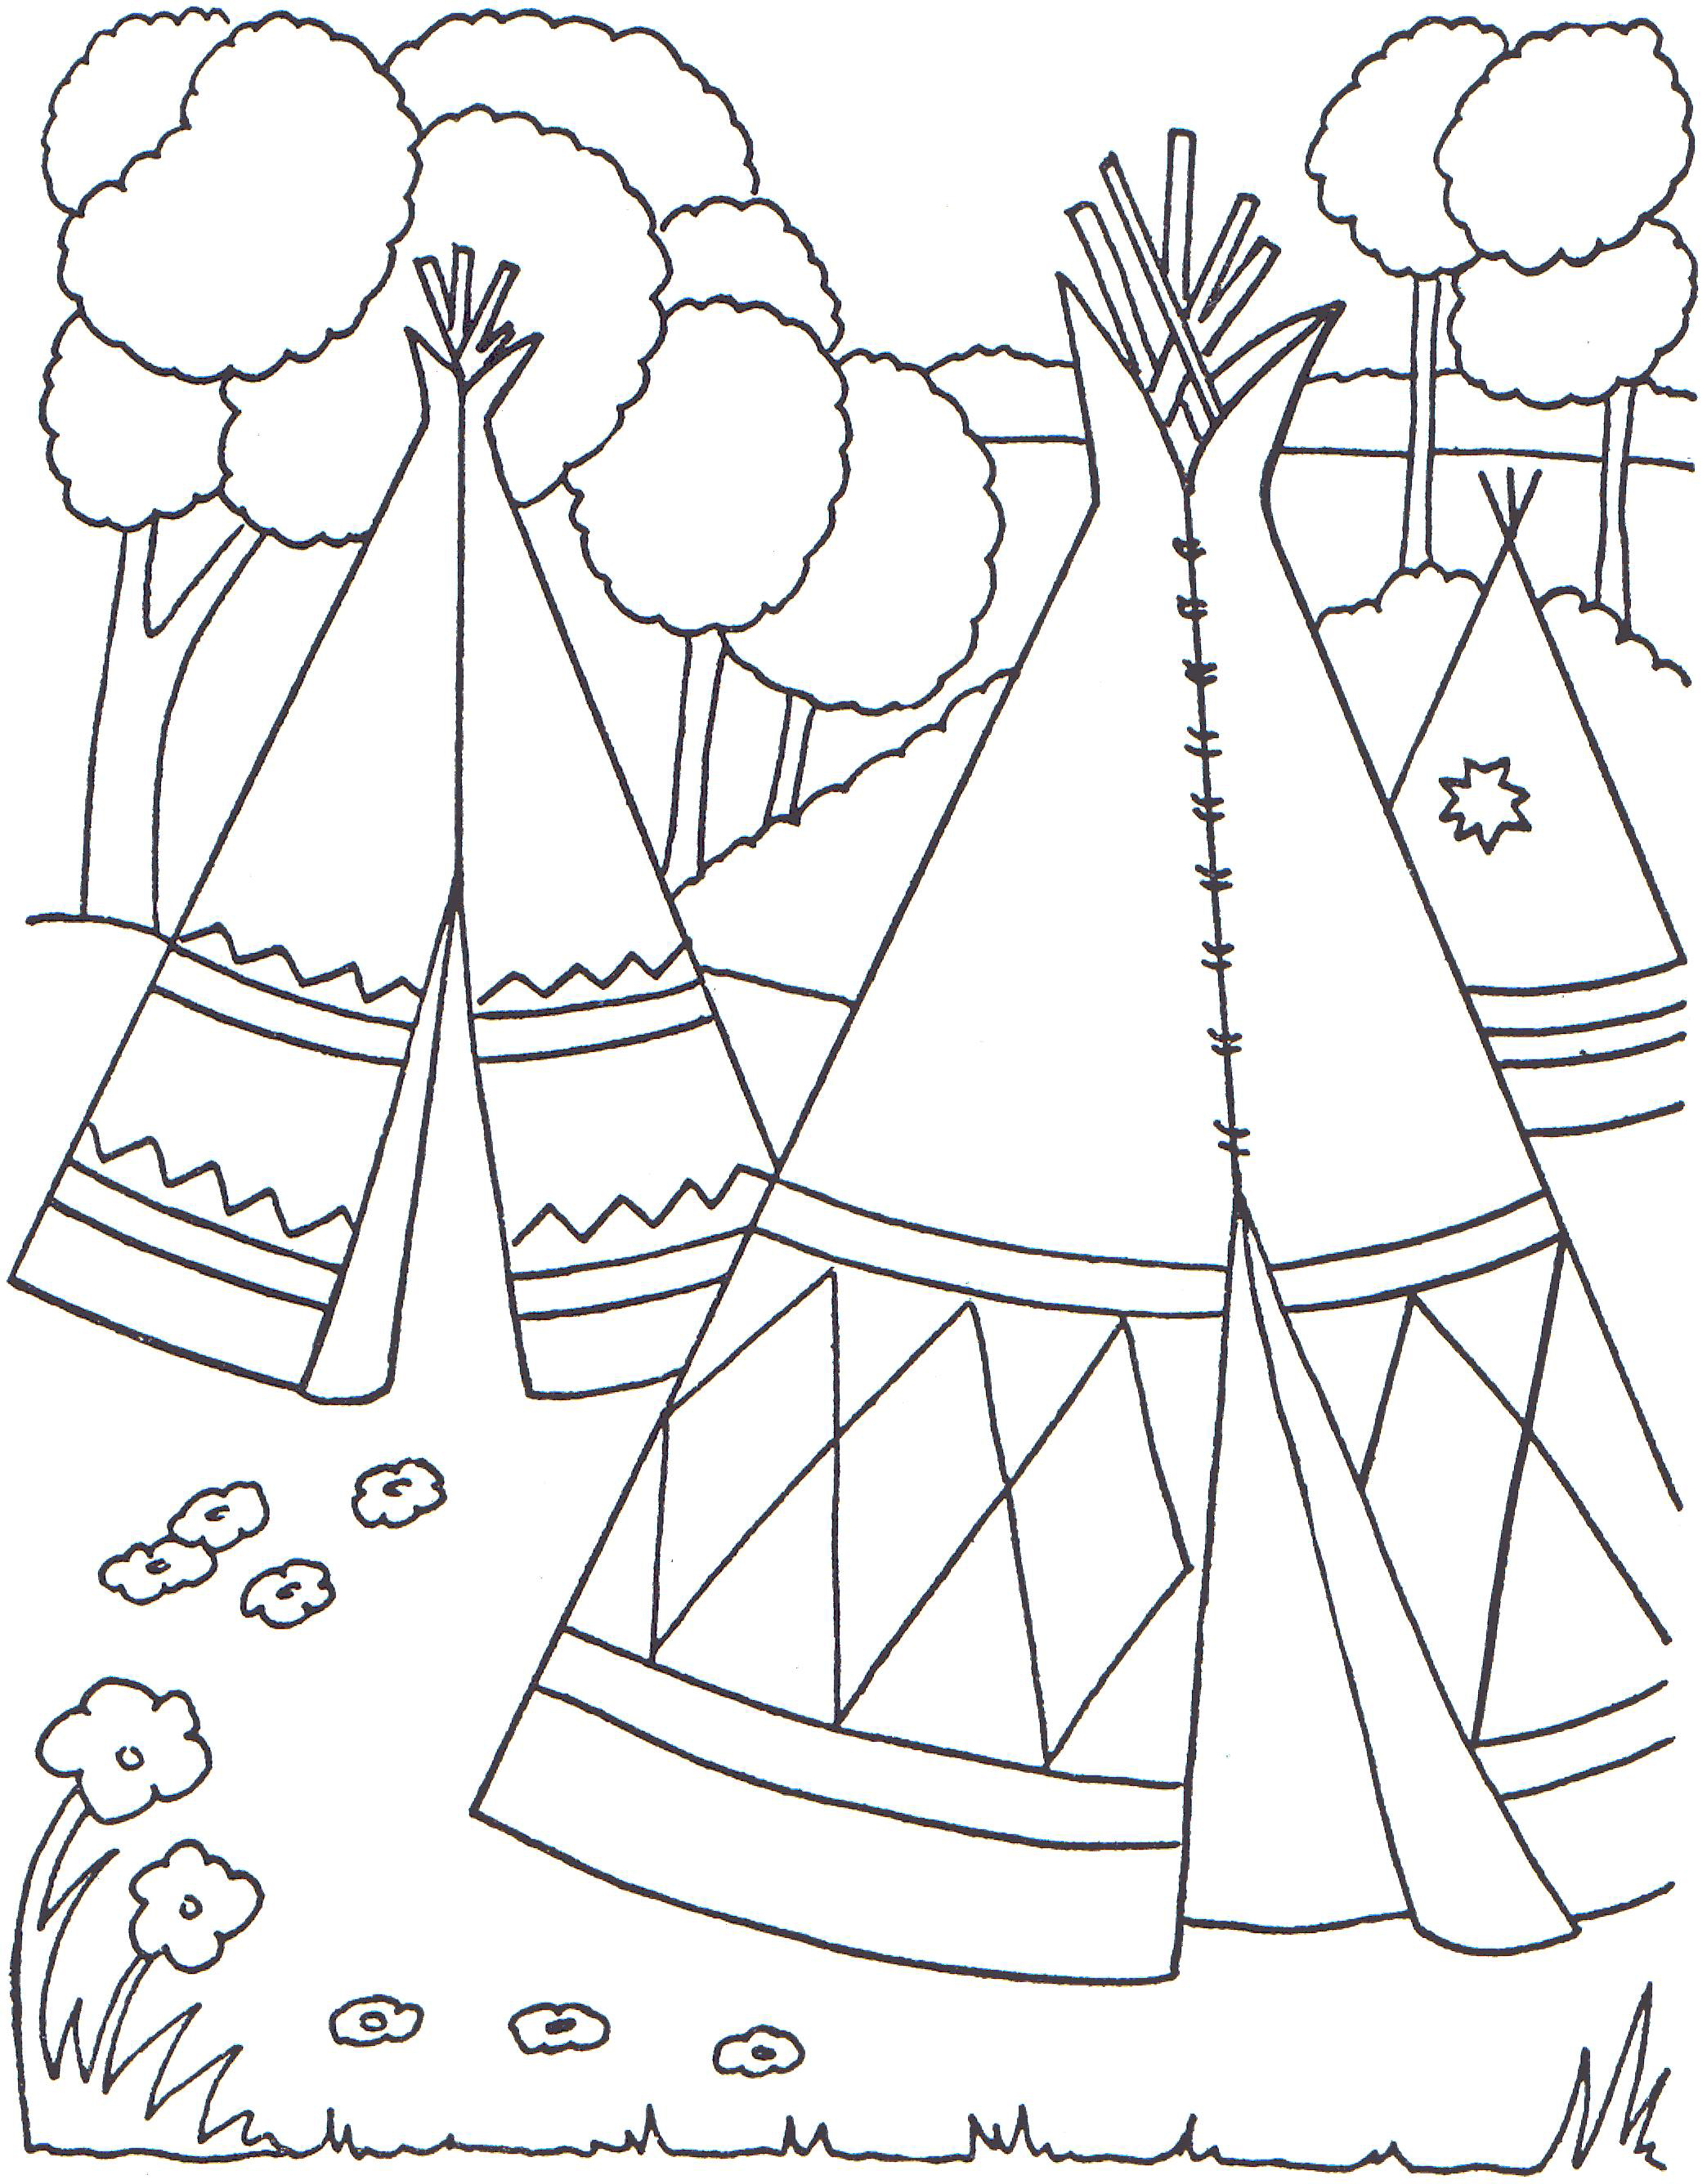 navajo indian coloring pages - photo#14